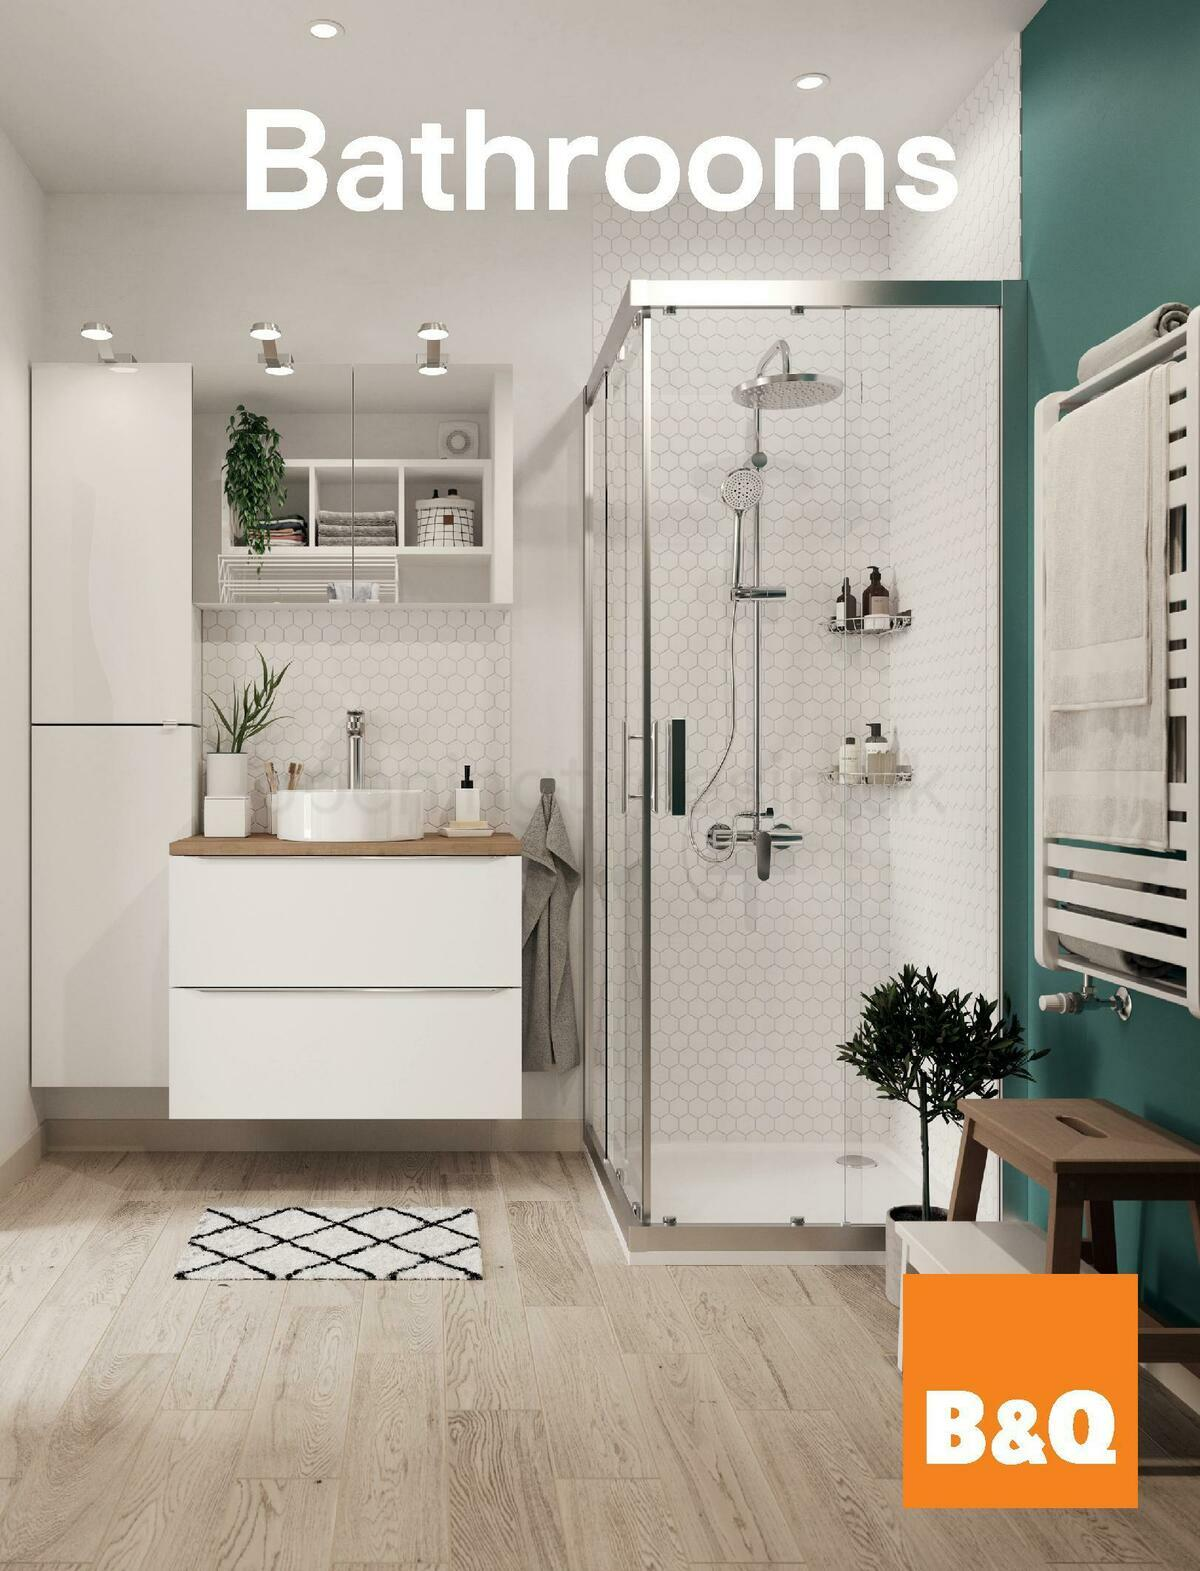 B&Q Bathroom Collections Offers from November 1